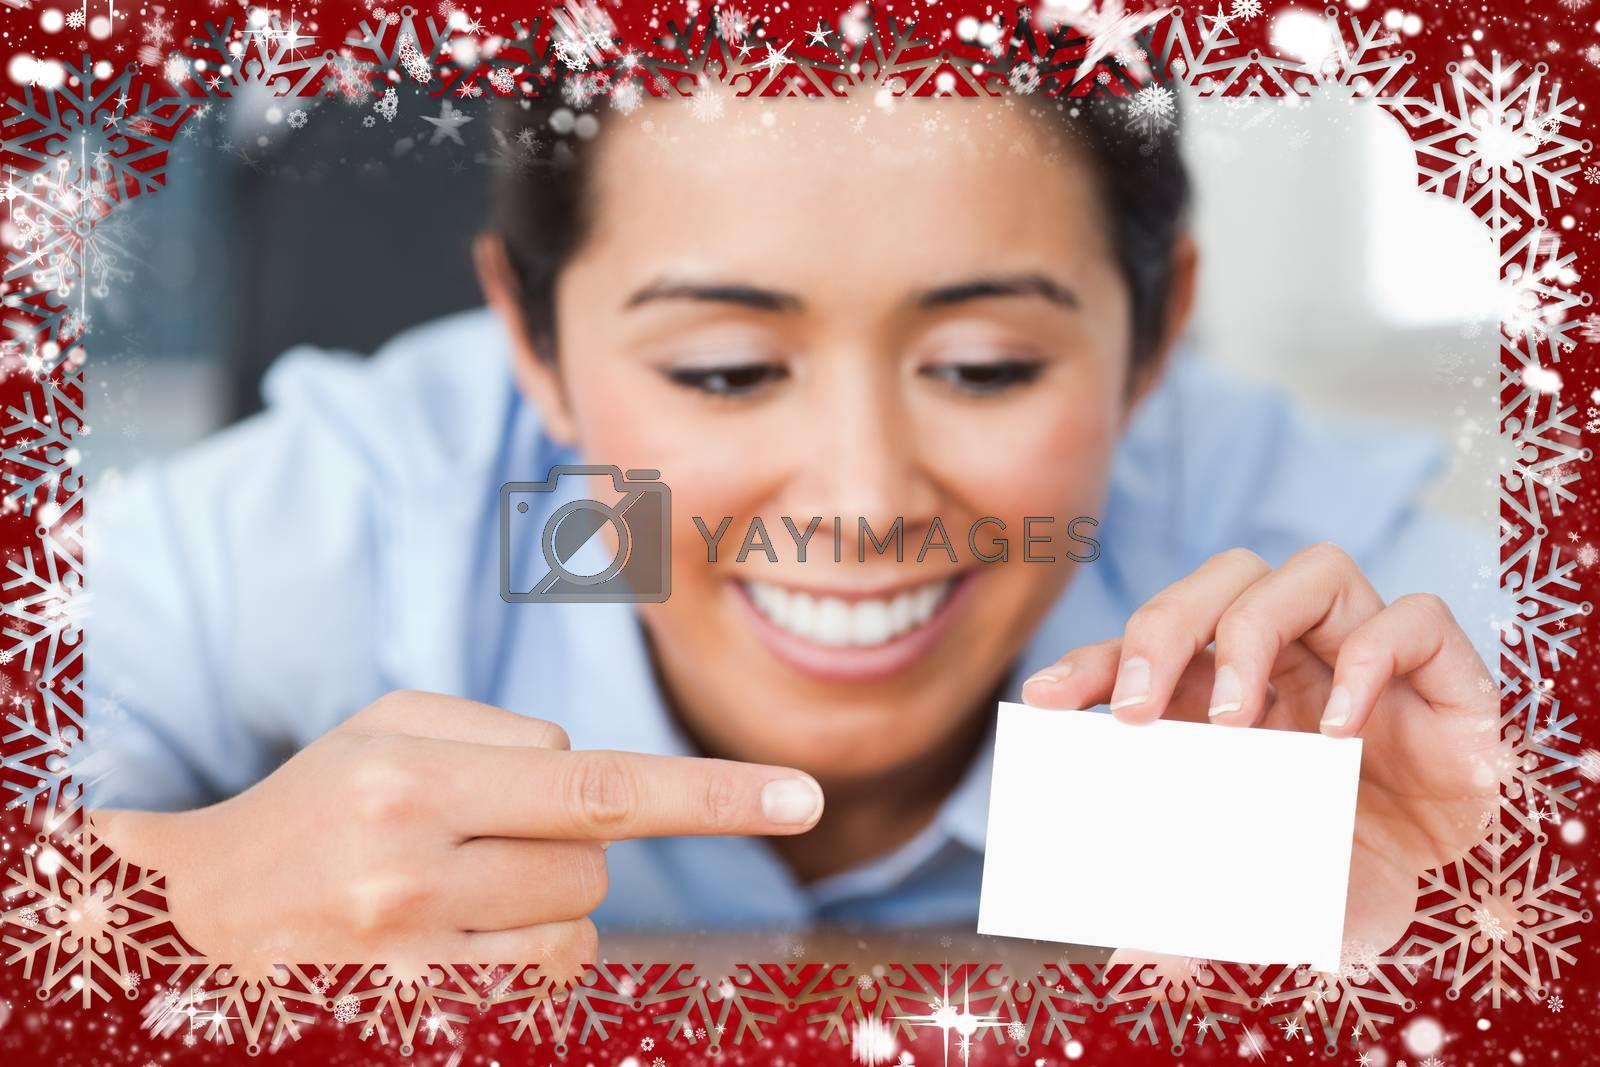 Composite image of beautiful woman showing her visiting card against snow